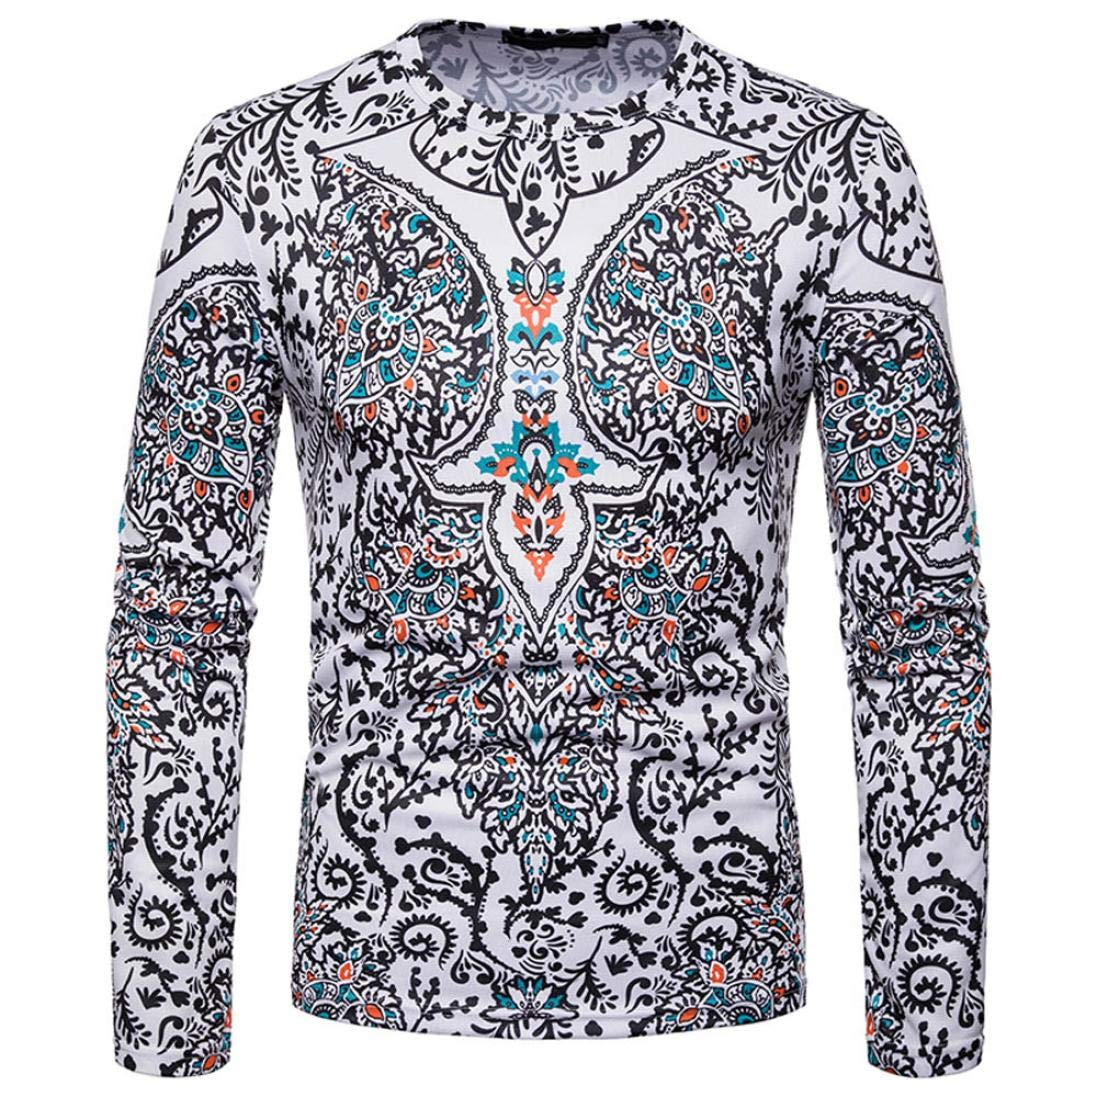 kaifongfu Men Shirt,African 30D Print Mens Long Sleeve Dashiki O-Neck Sweatshirt TopWhite2XL by kaifongfu-mens clothes